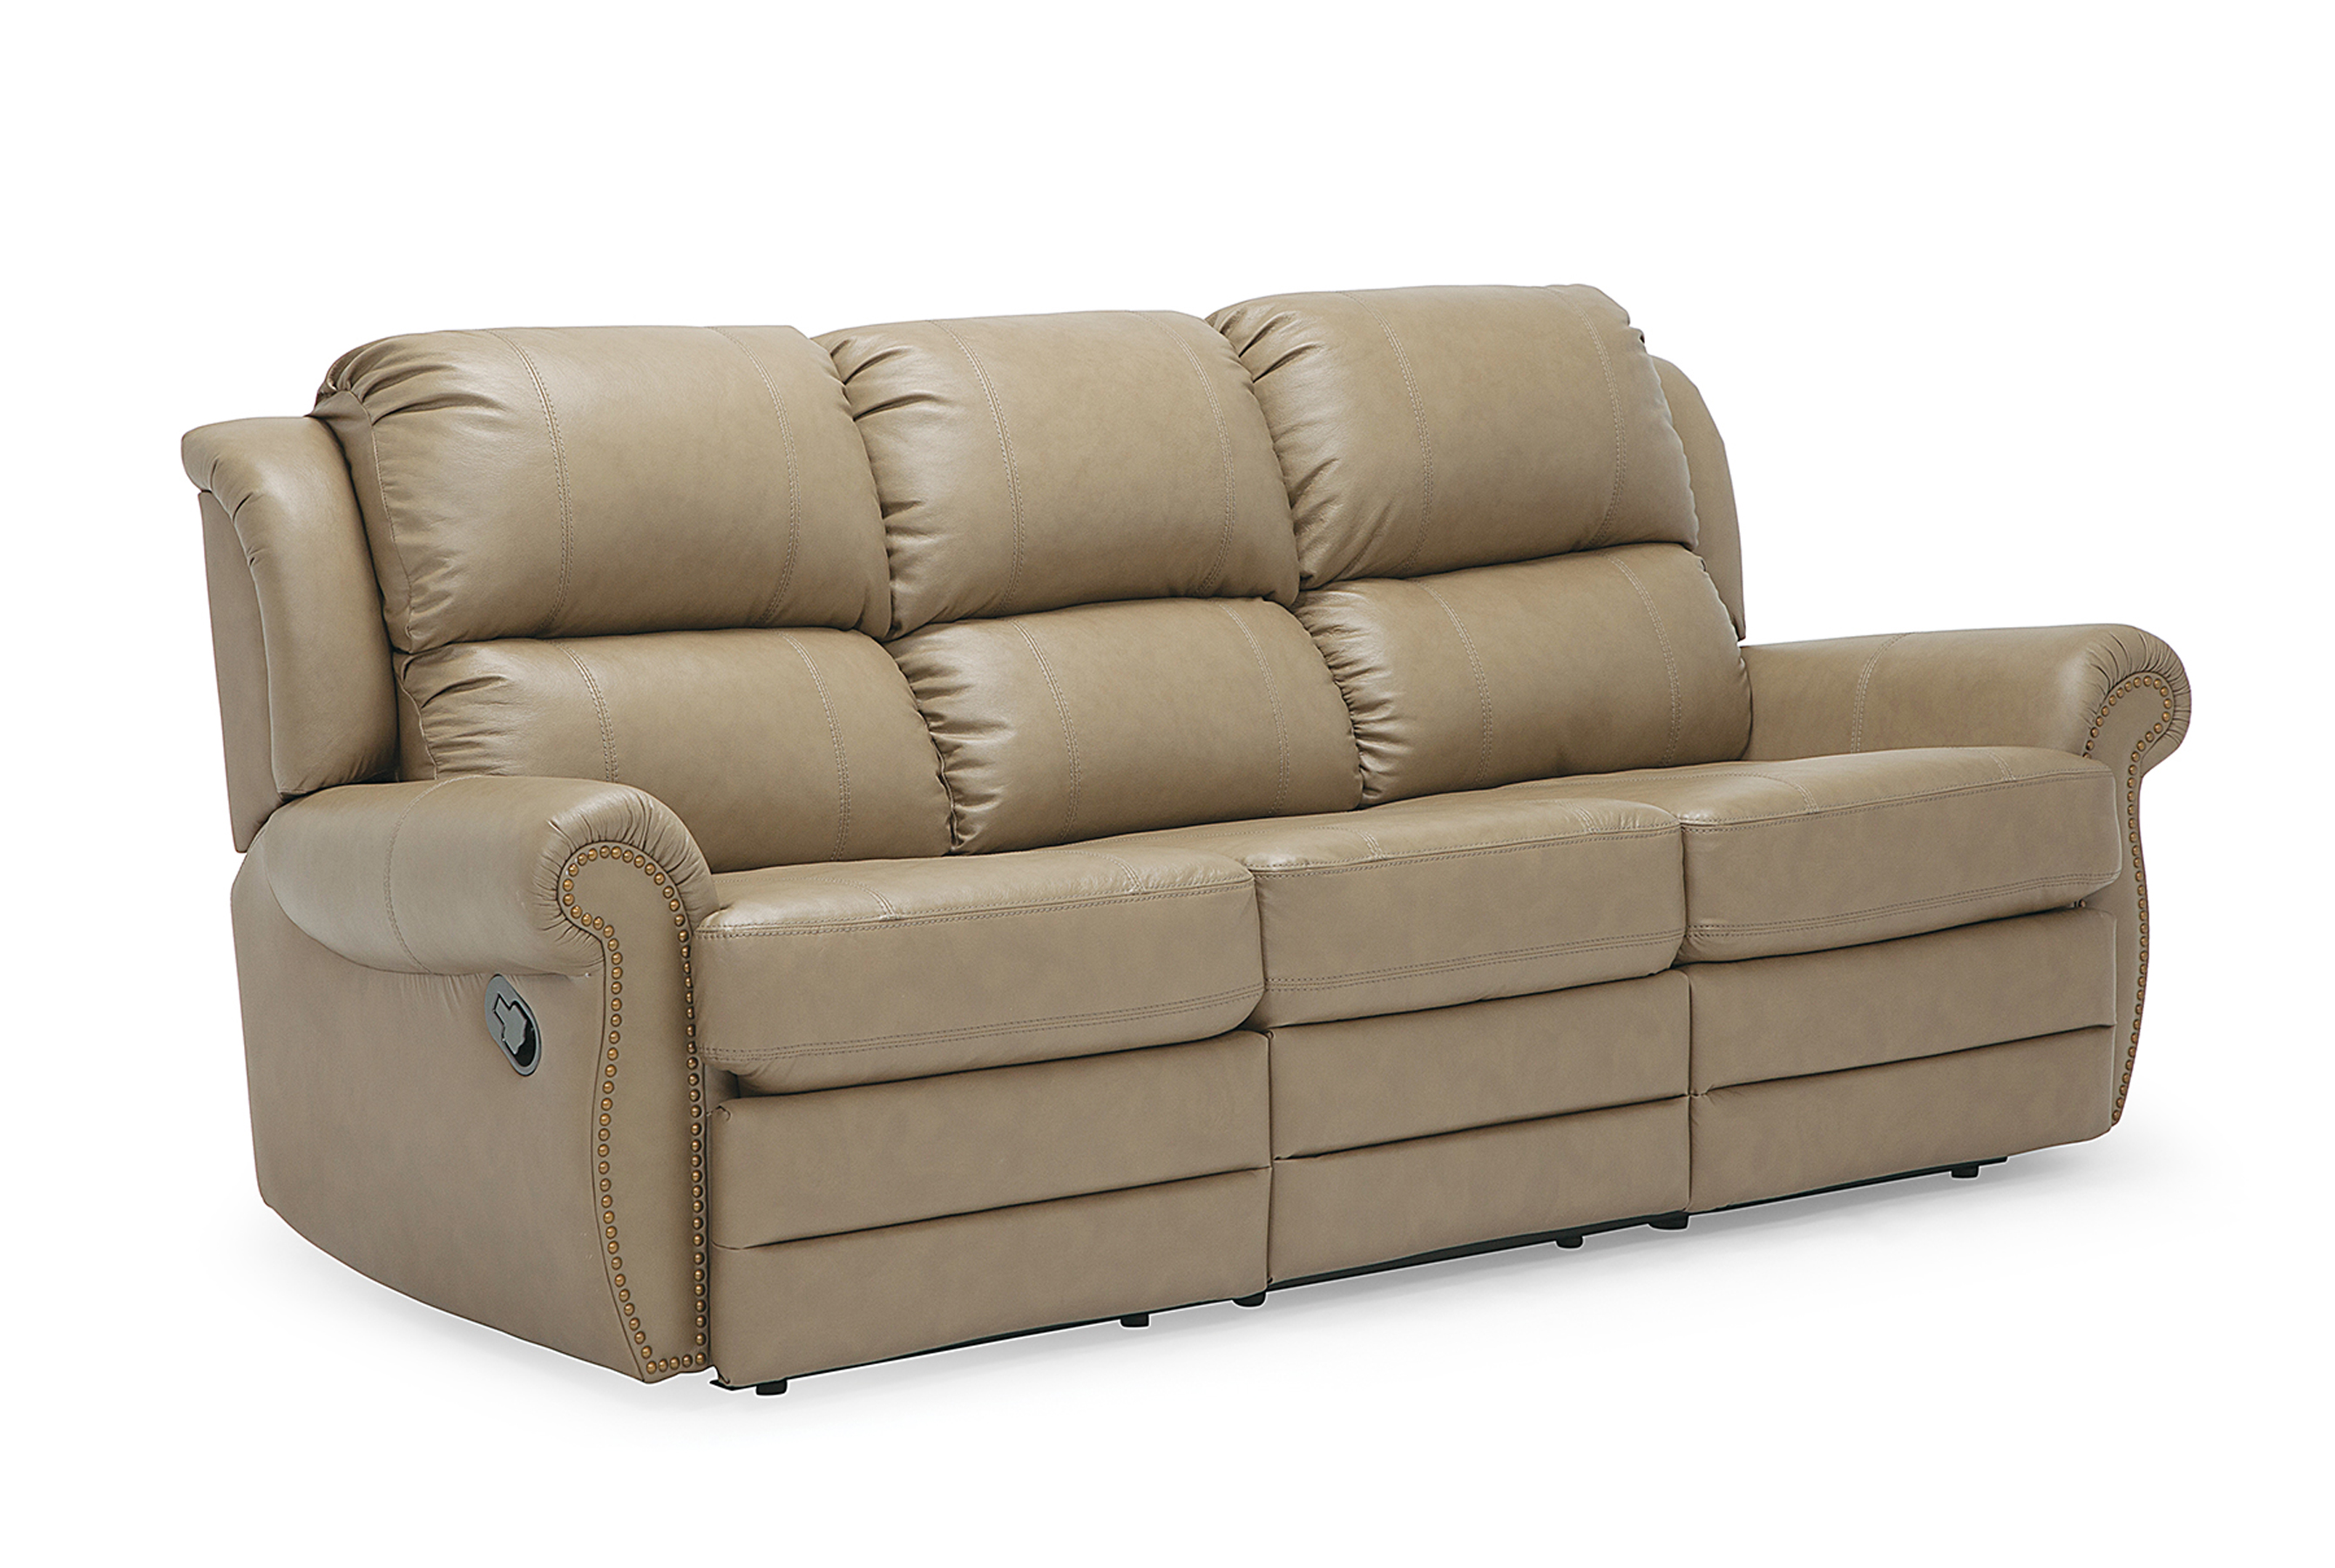 Michigan Leather Reclining Sofa, Classic | Sofas and Sectionals